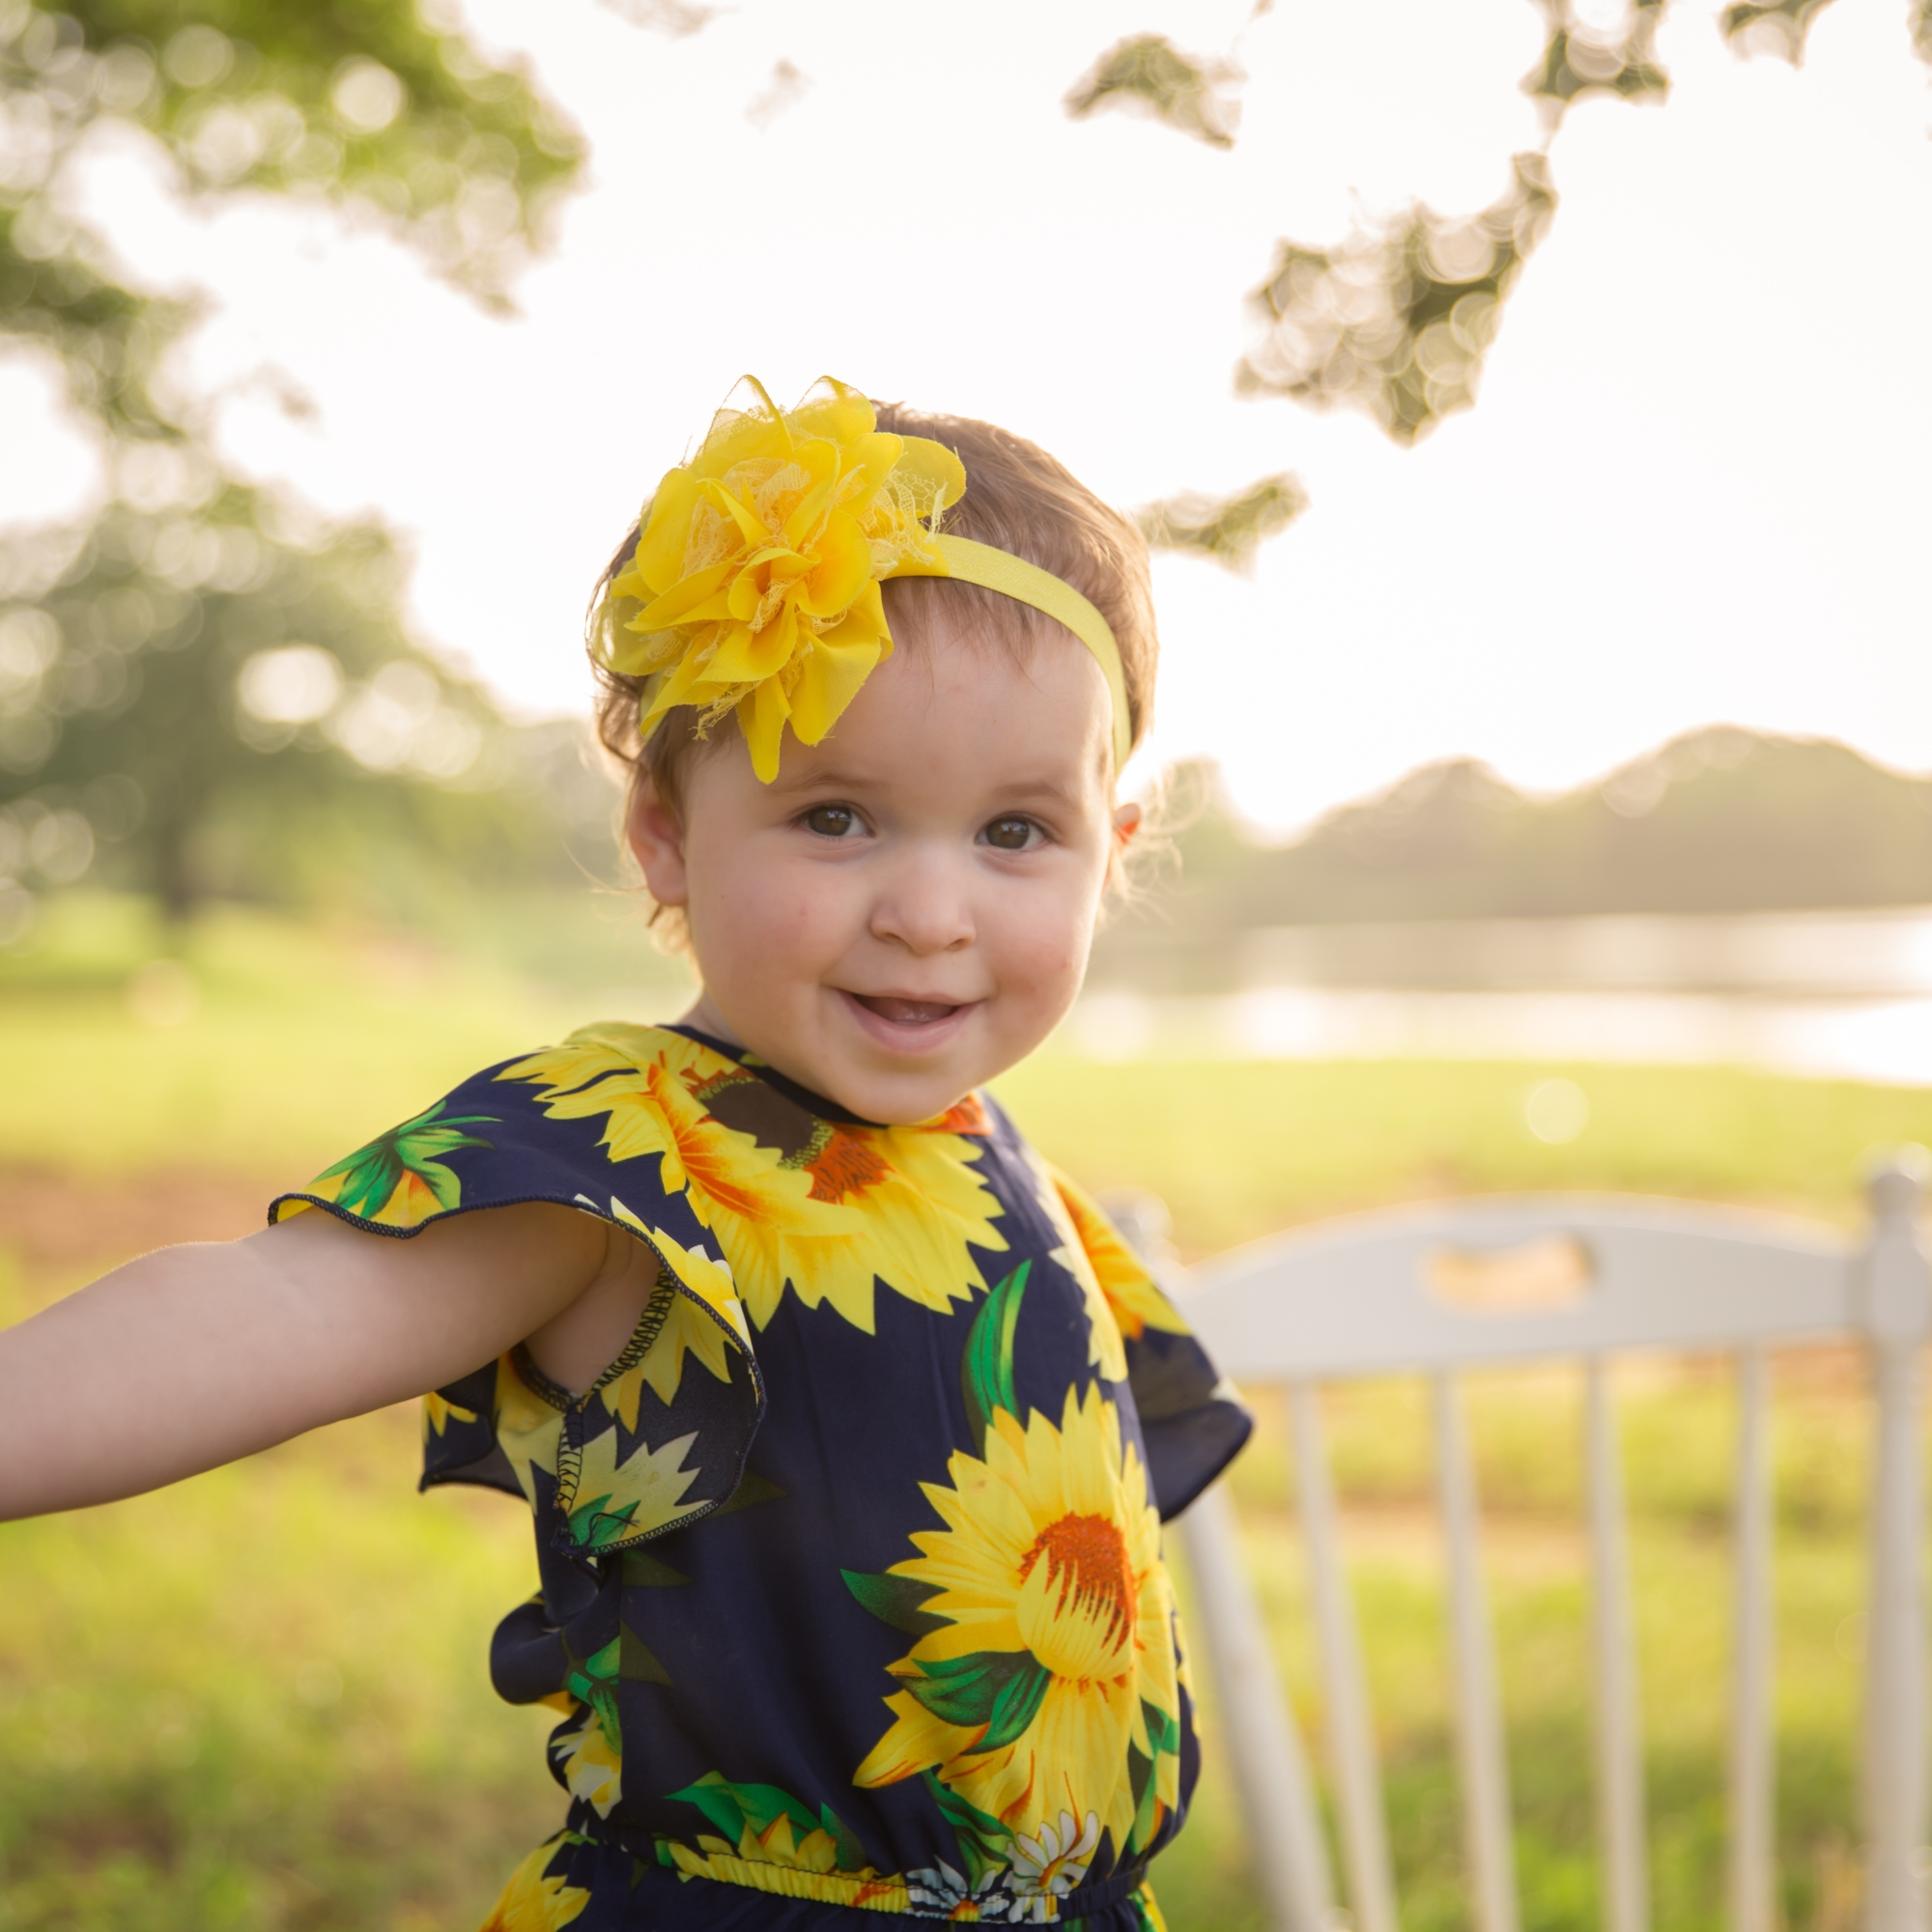 Sunflower Texas Arlington Toddler Milestone Photography